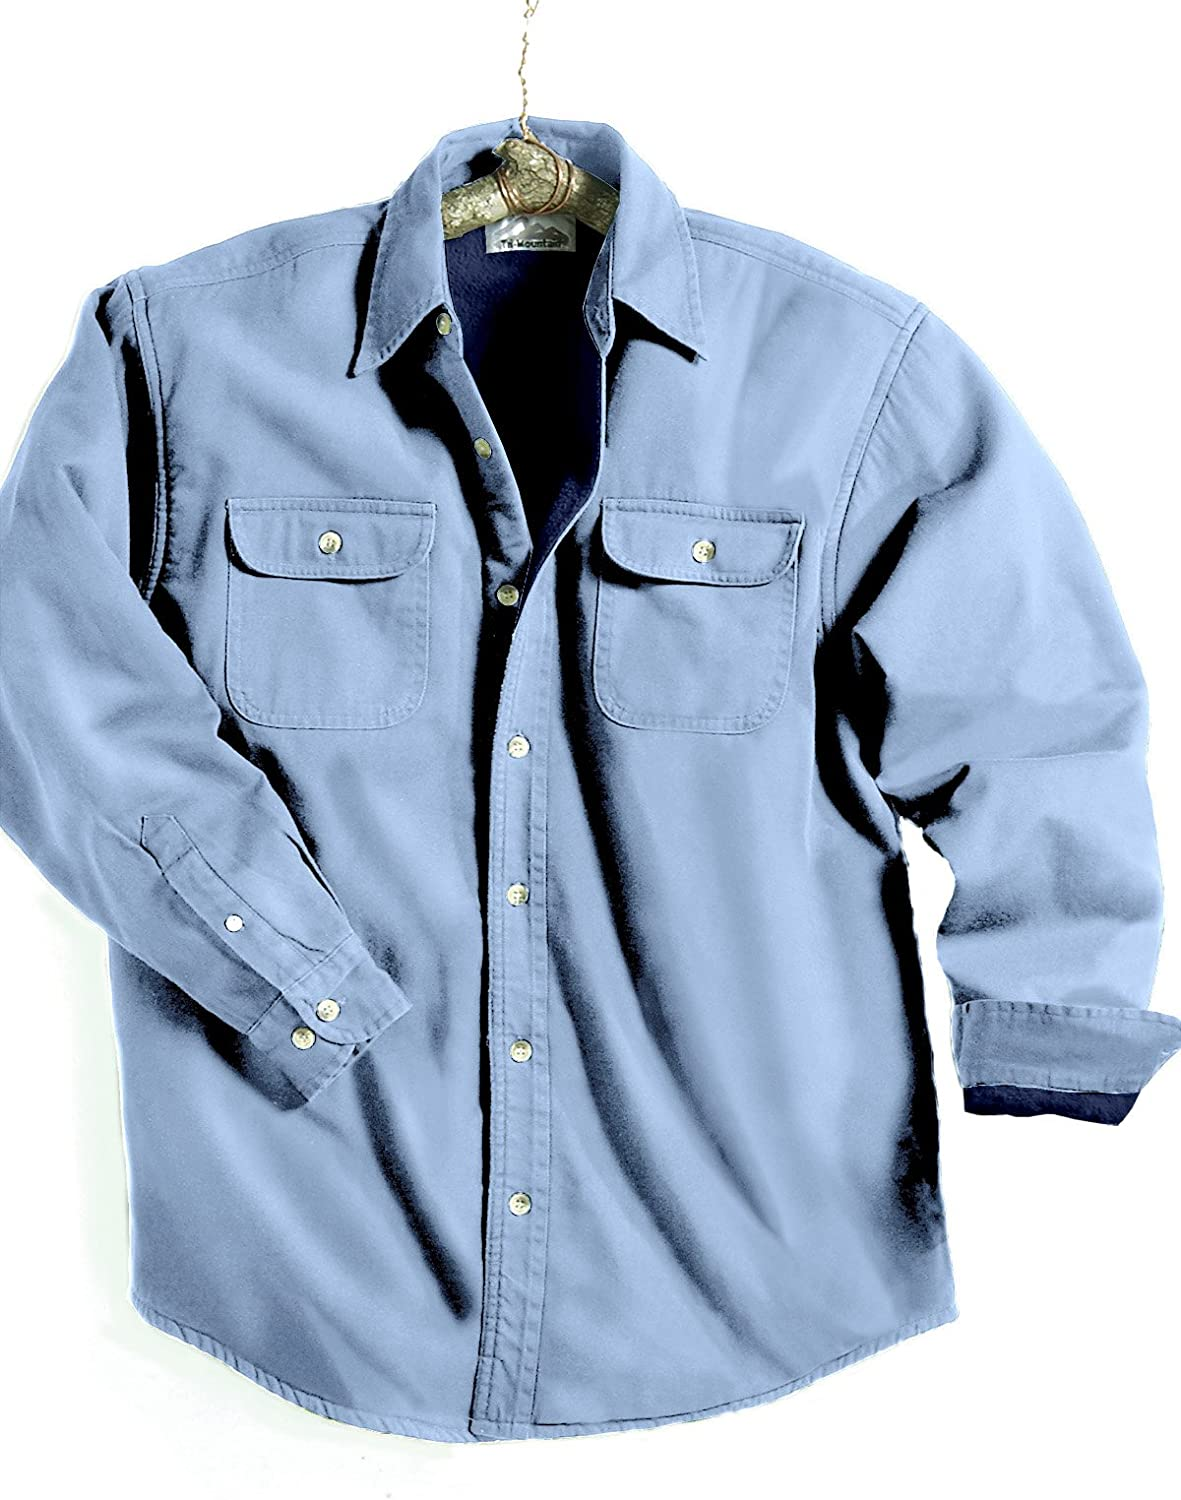 Tri-Mountain Big and Tall Denim Fleece Lined Shirt up to 6XT with